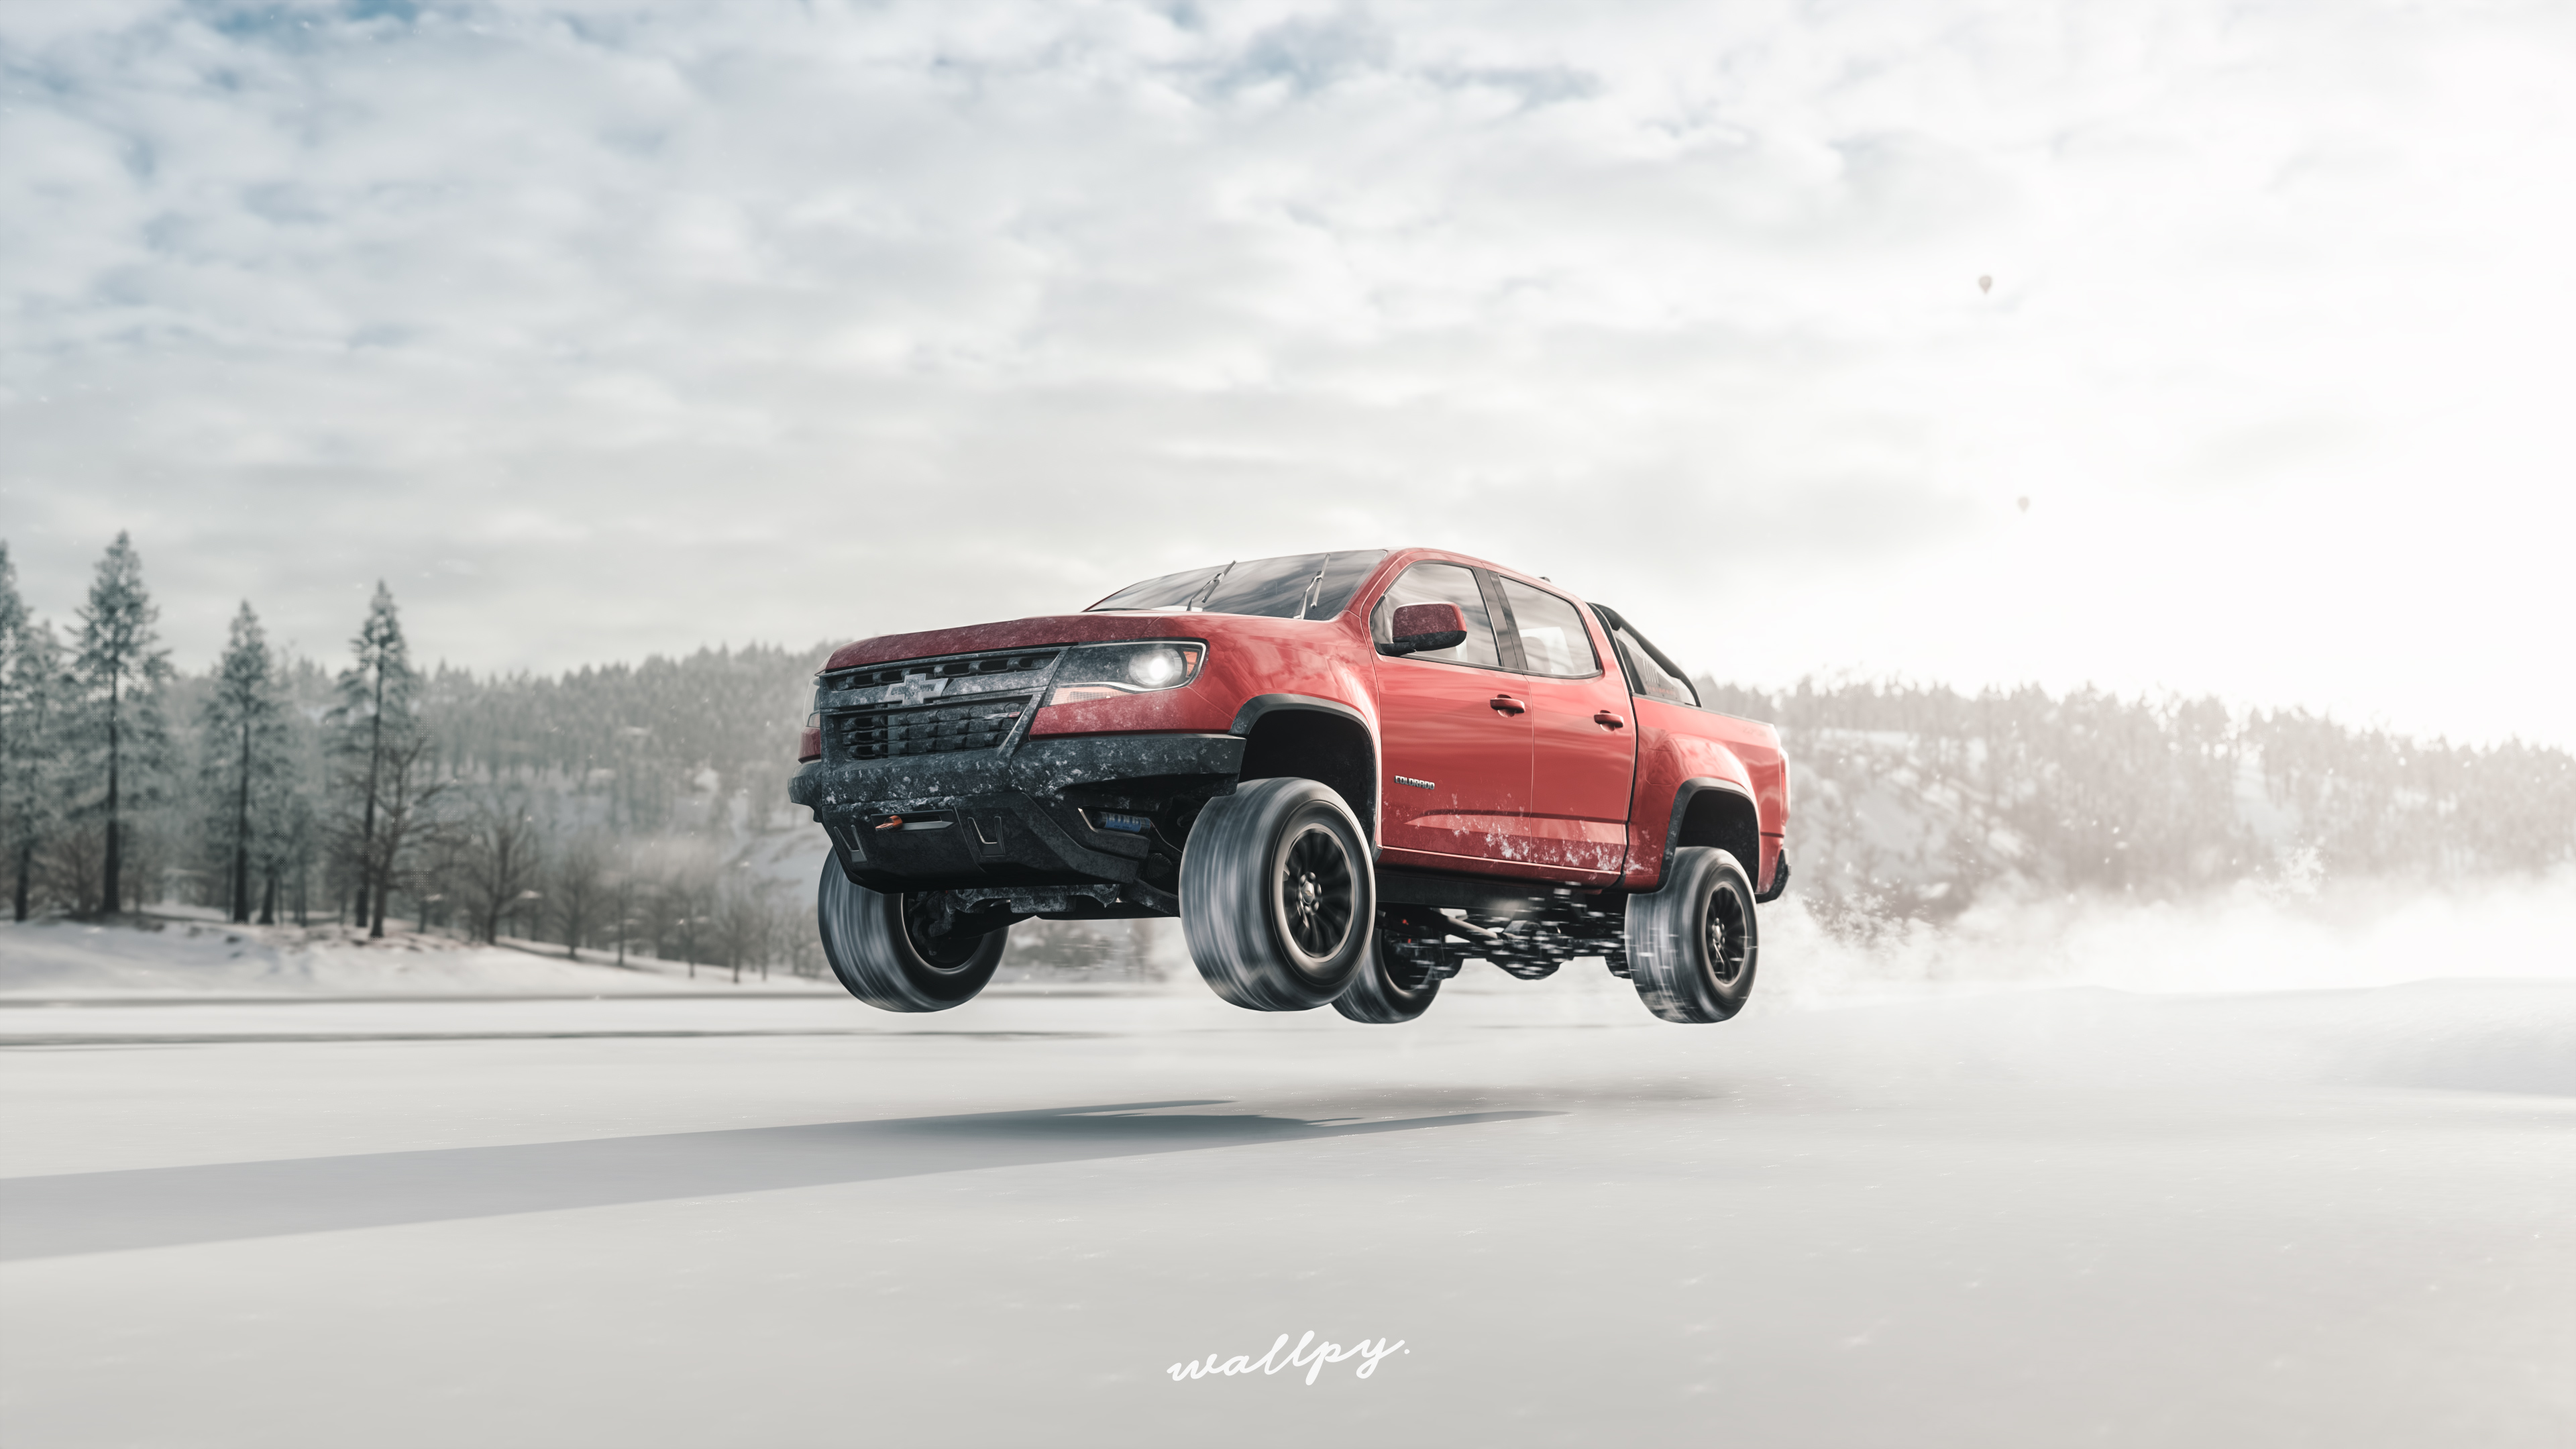 Wallpaper 4k Chevrolet Truck Jump Snow Forza Horizon 4 4k 4k